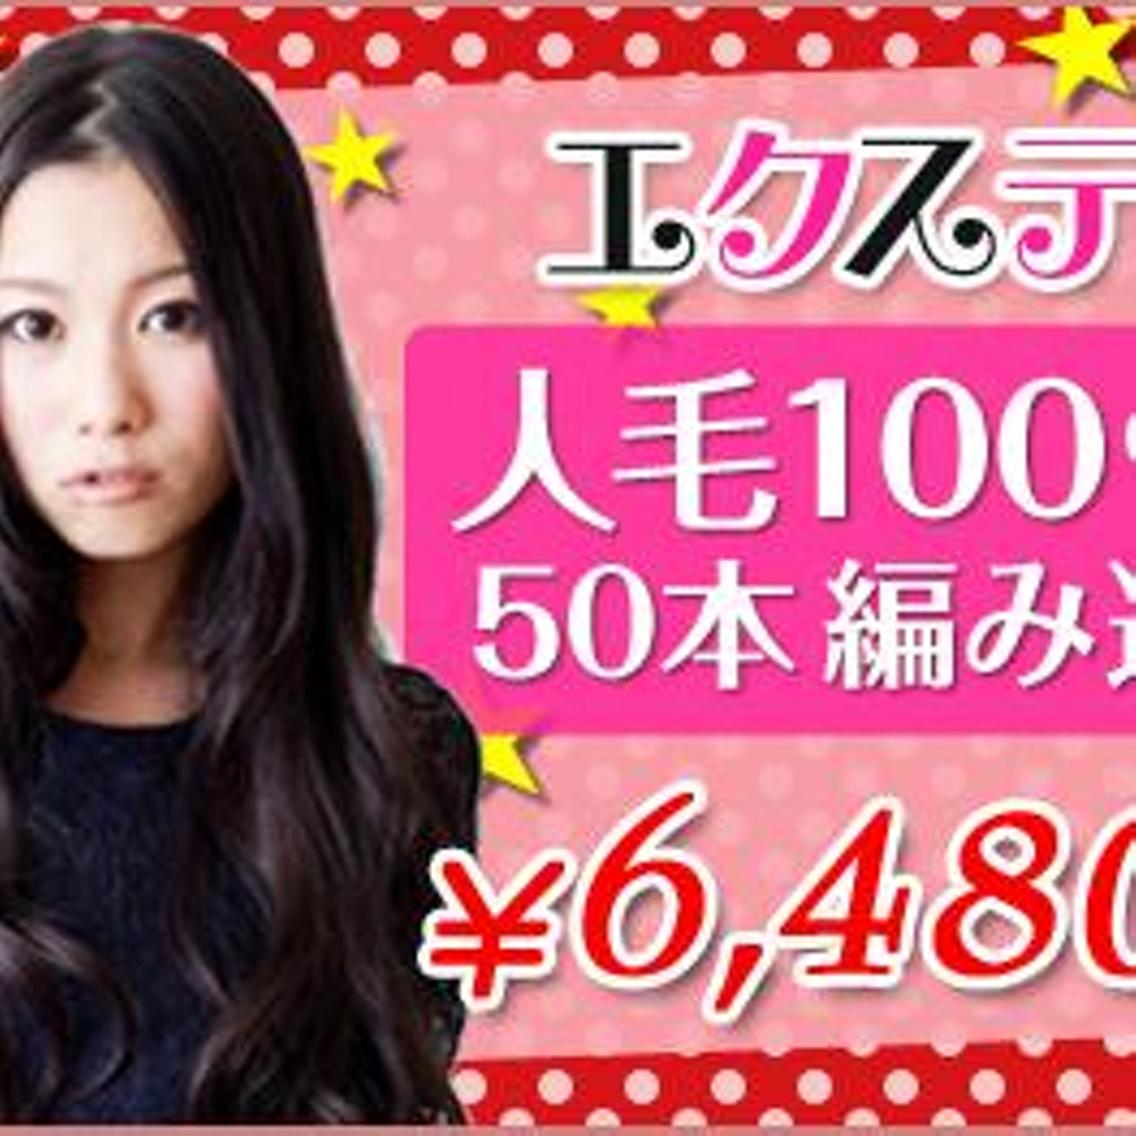 DuO hair Extentions心斎橋店所属・DuoHair心斎橋店の掲載